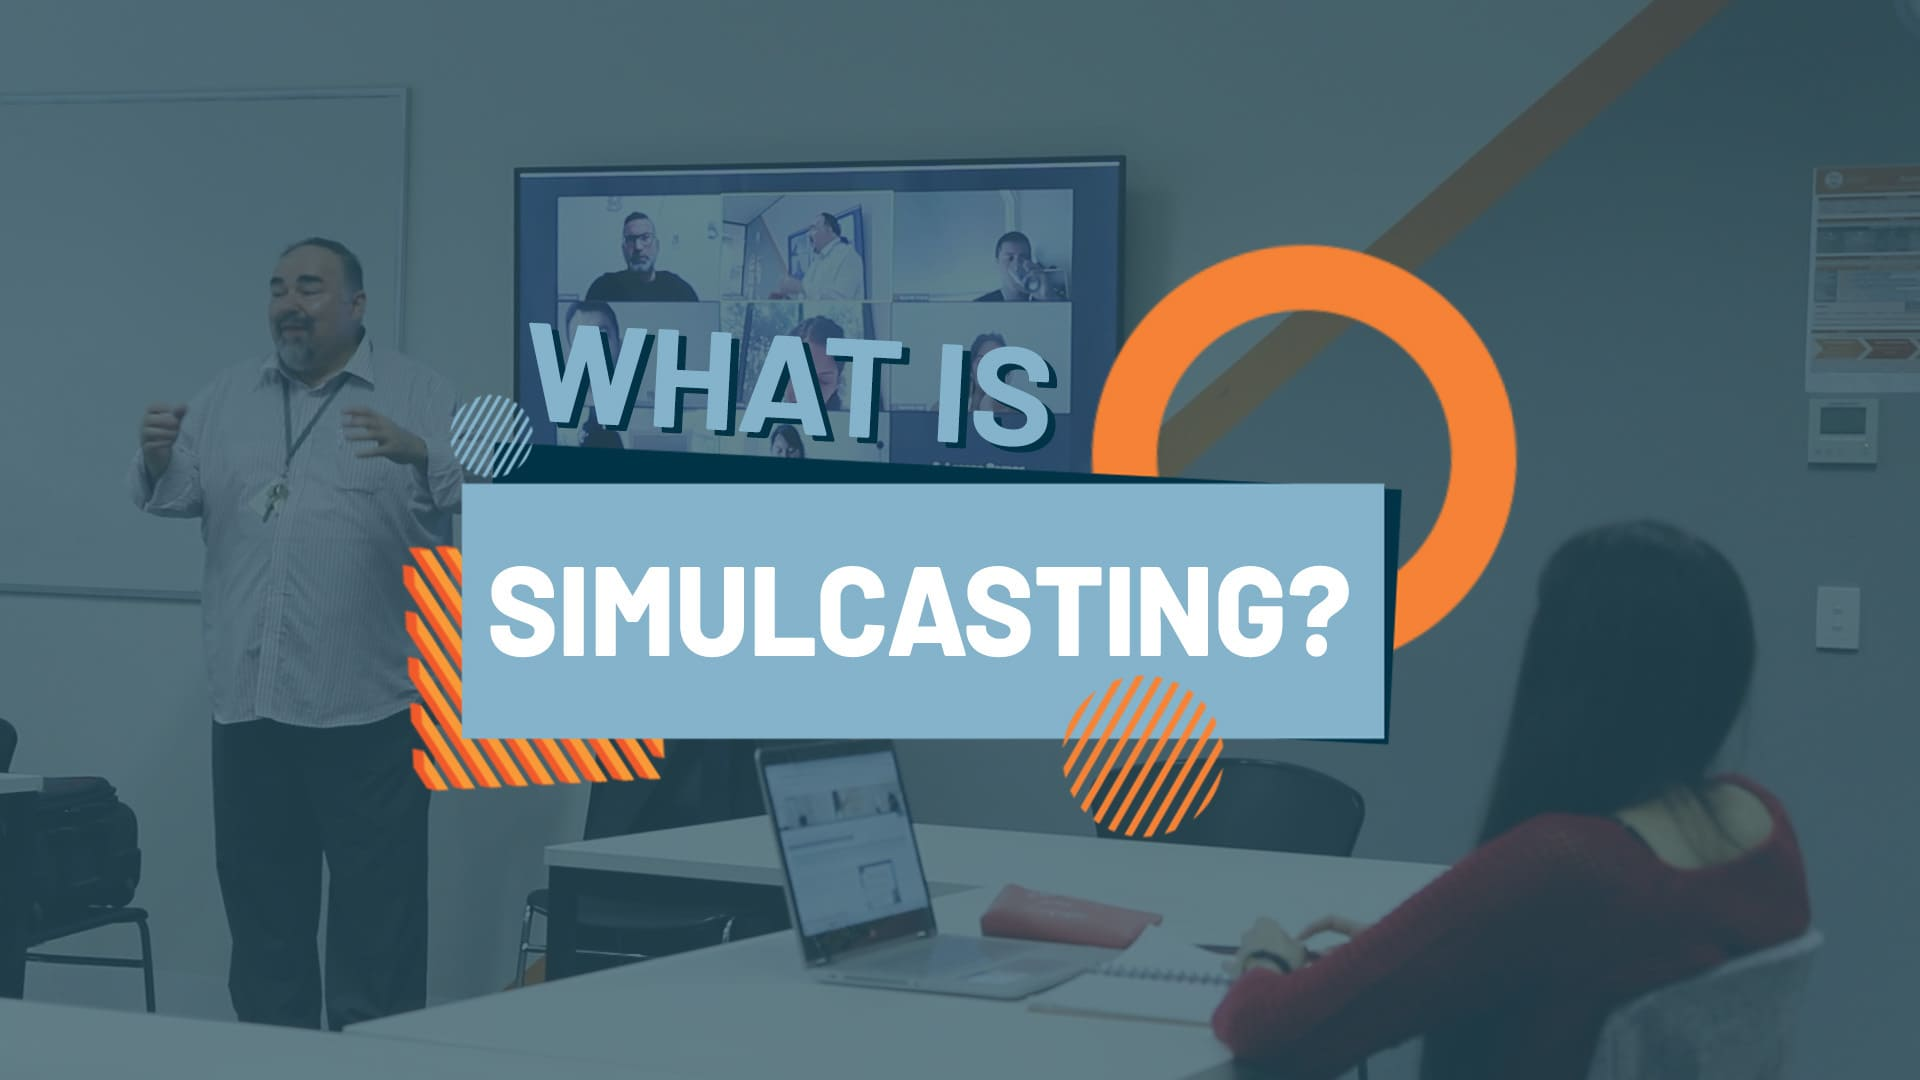 simulcasting-introduction-video